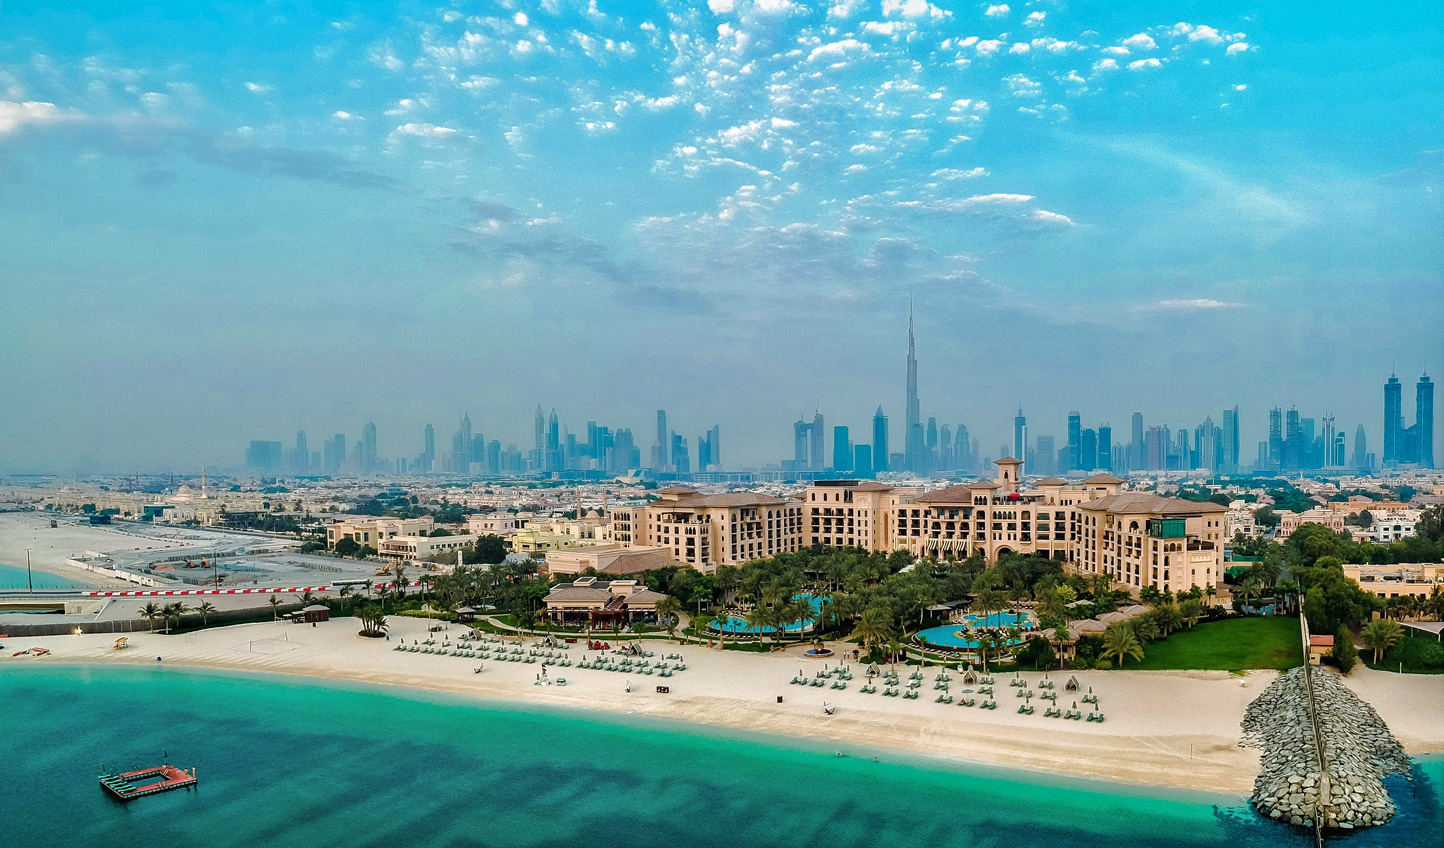 Caught somewhere between the glimmer of the Arabian Gulf and the promise of the city skyline